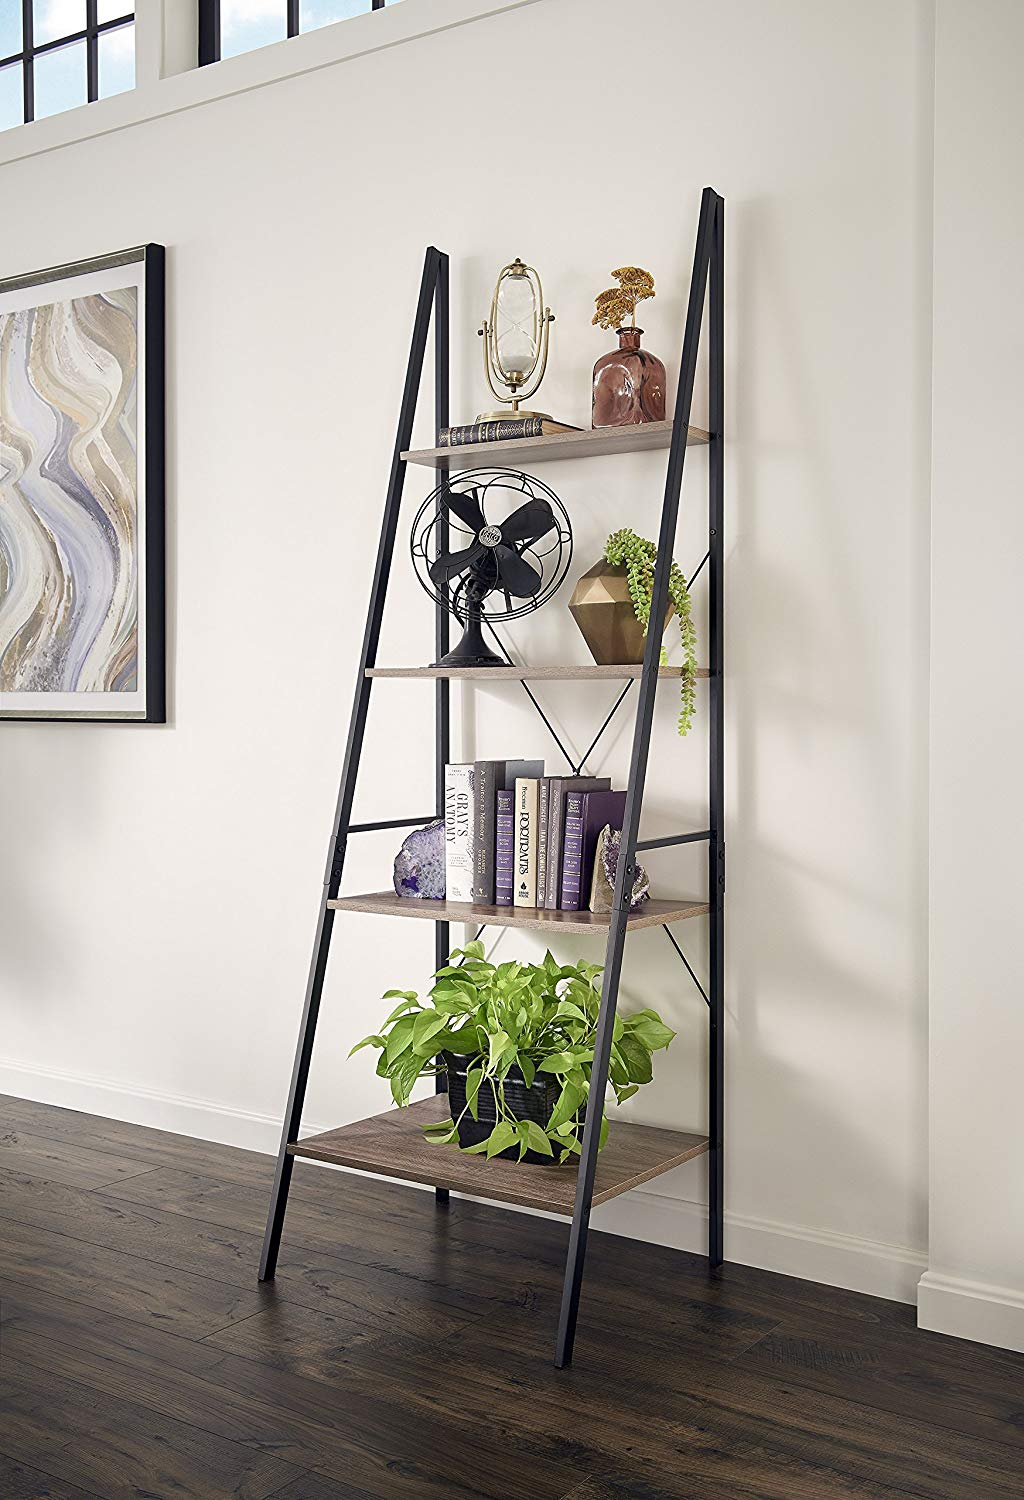 ladder-display-shelf-black-frame-with-wooden-shelves-four-legs-standalone-design